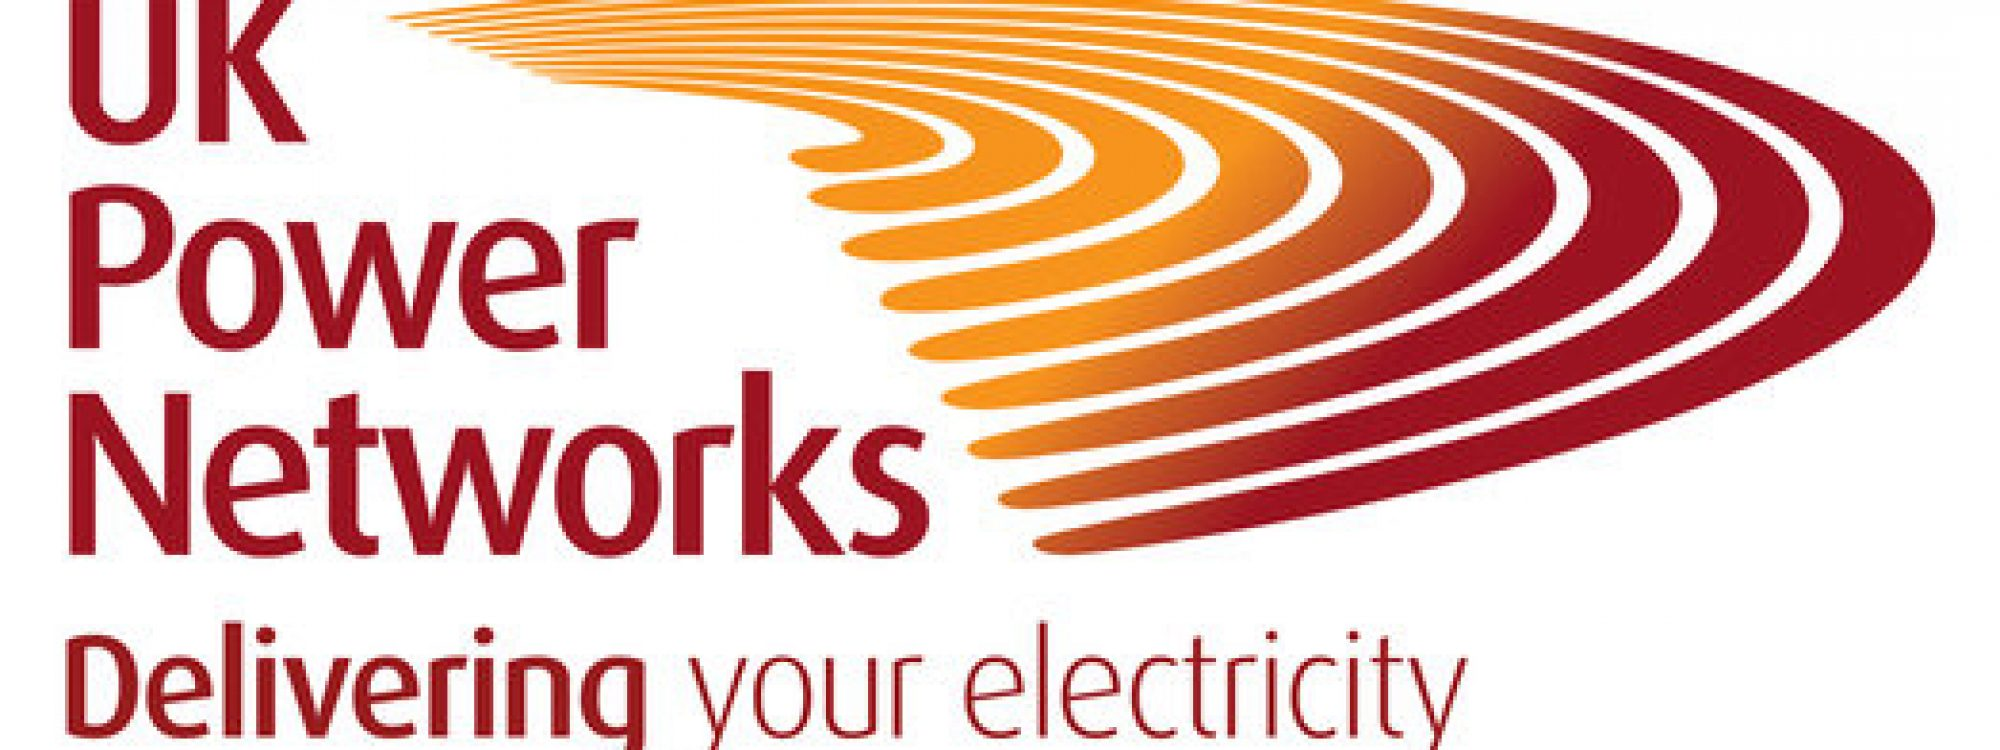 UK Power Networks Nominated for Two ECCCSA Awards